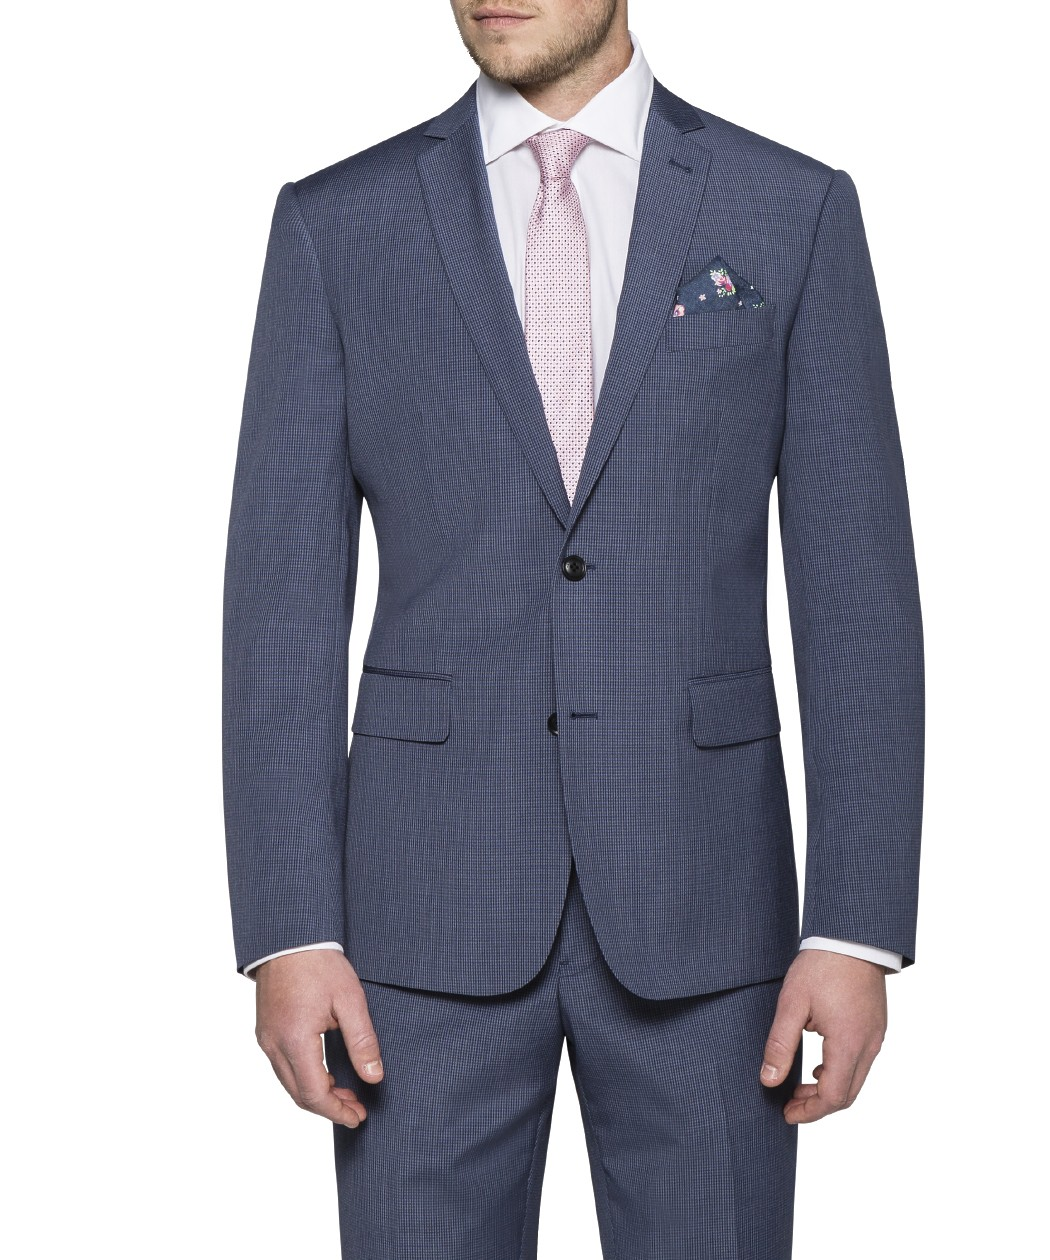 8c678967945 Slim Fit Suit Jacket Navy Blue Small Check